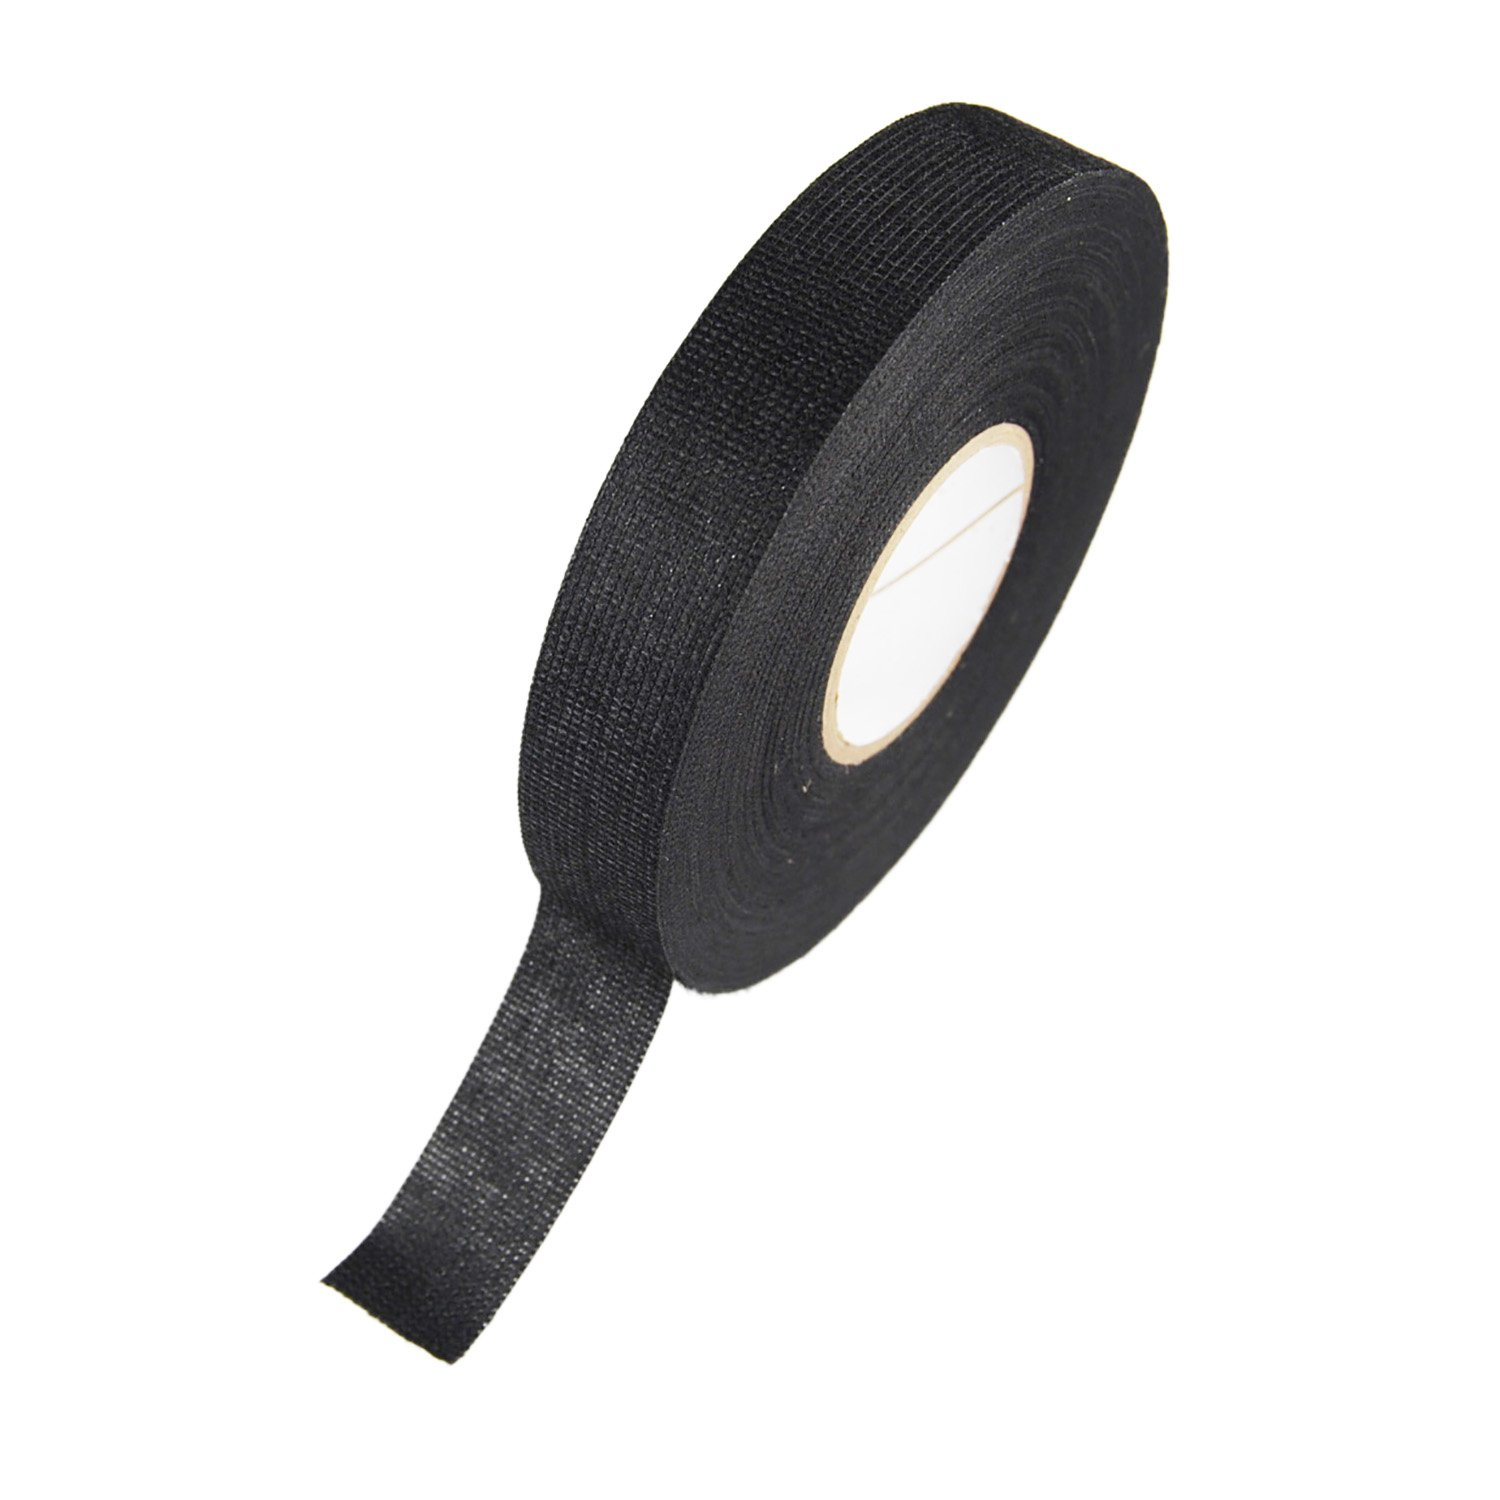 71iBMUUQoSL._SL1500_ amazon com novosonics 51618 automotive cloth tape, wire loom wire loom harness tape at soozxer.org